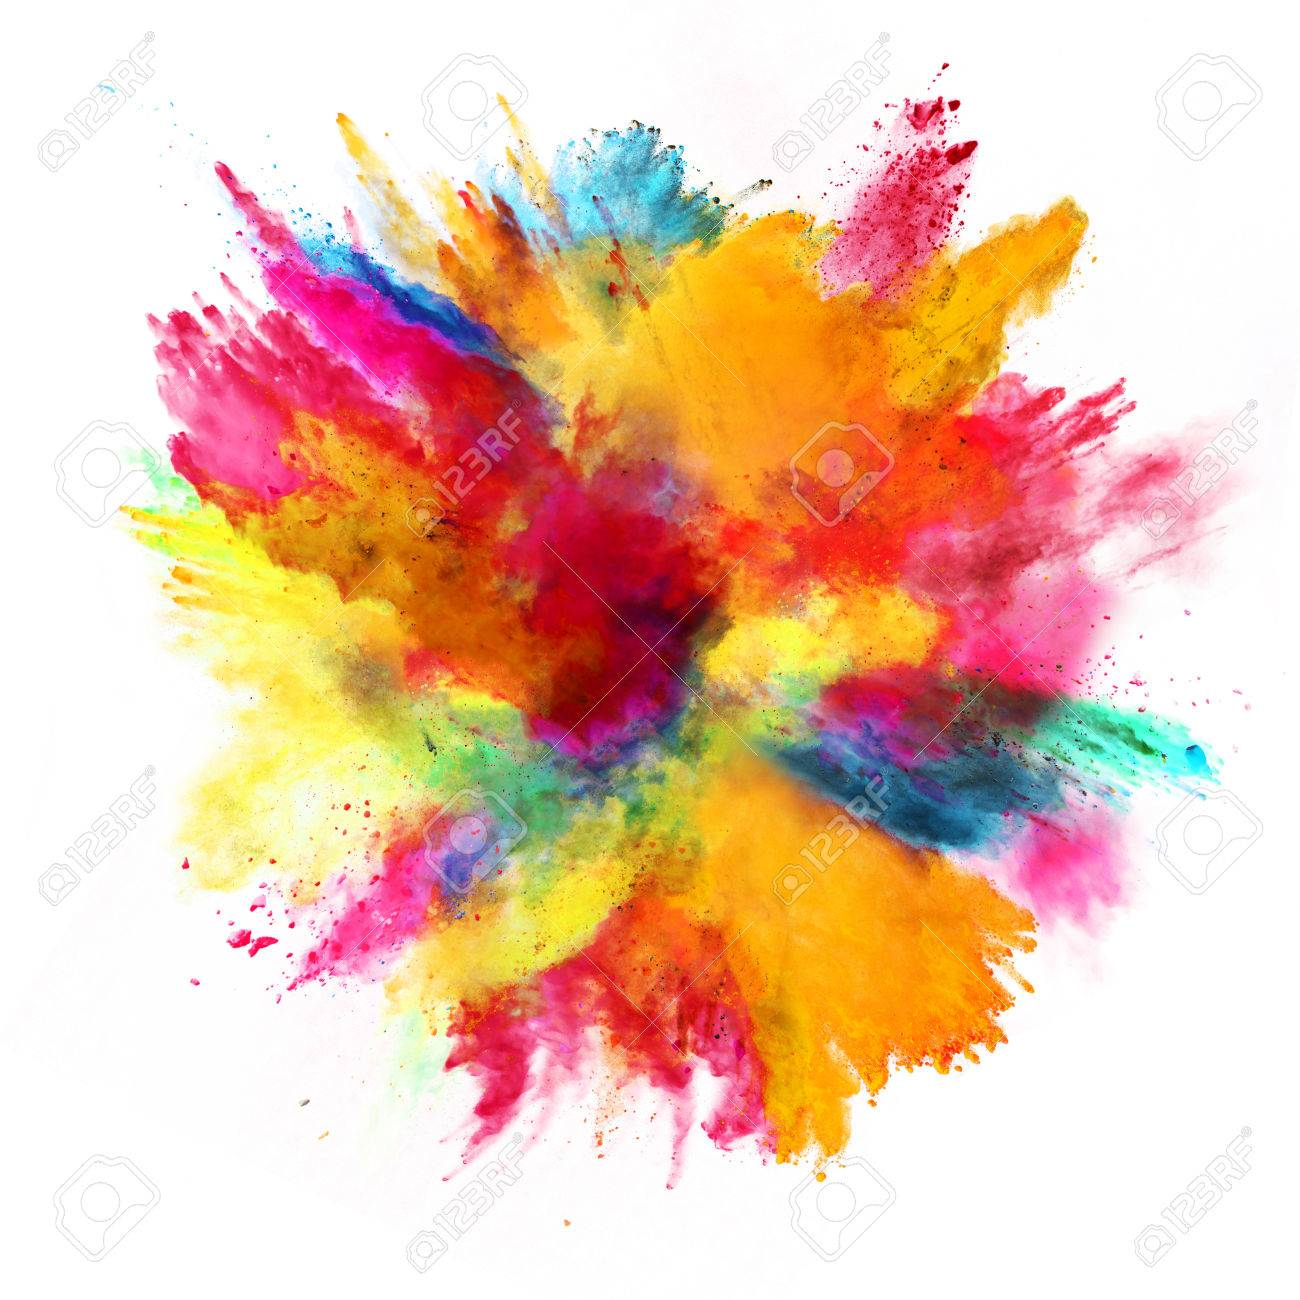 Explosion of colored powder, isolated on white background - 70485356